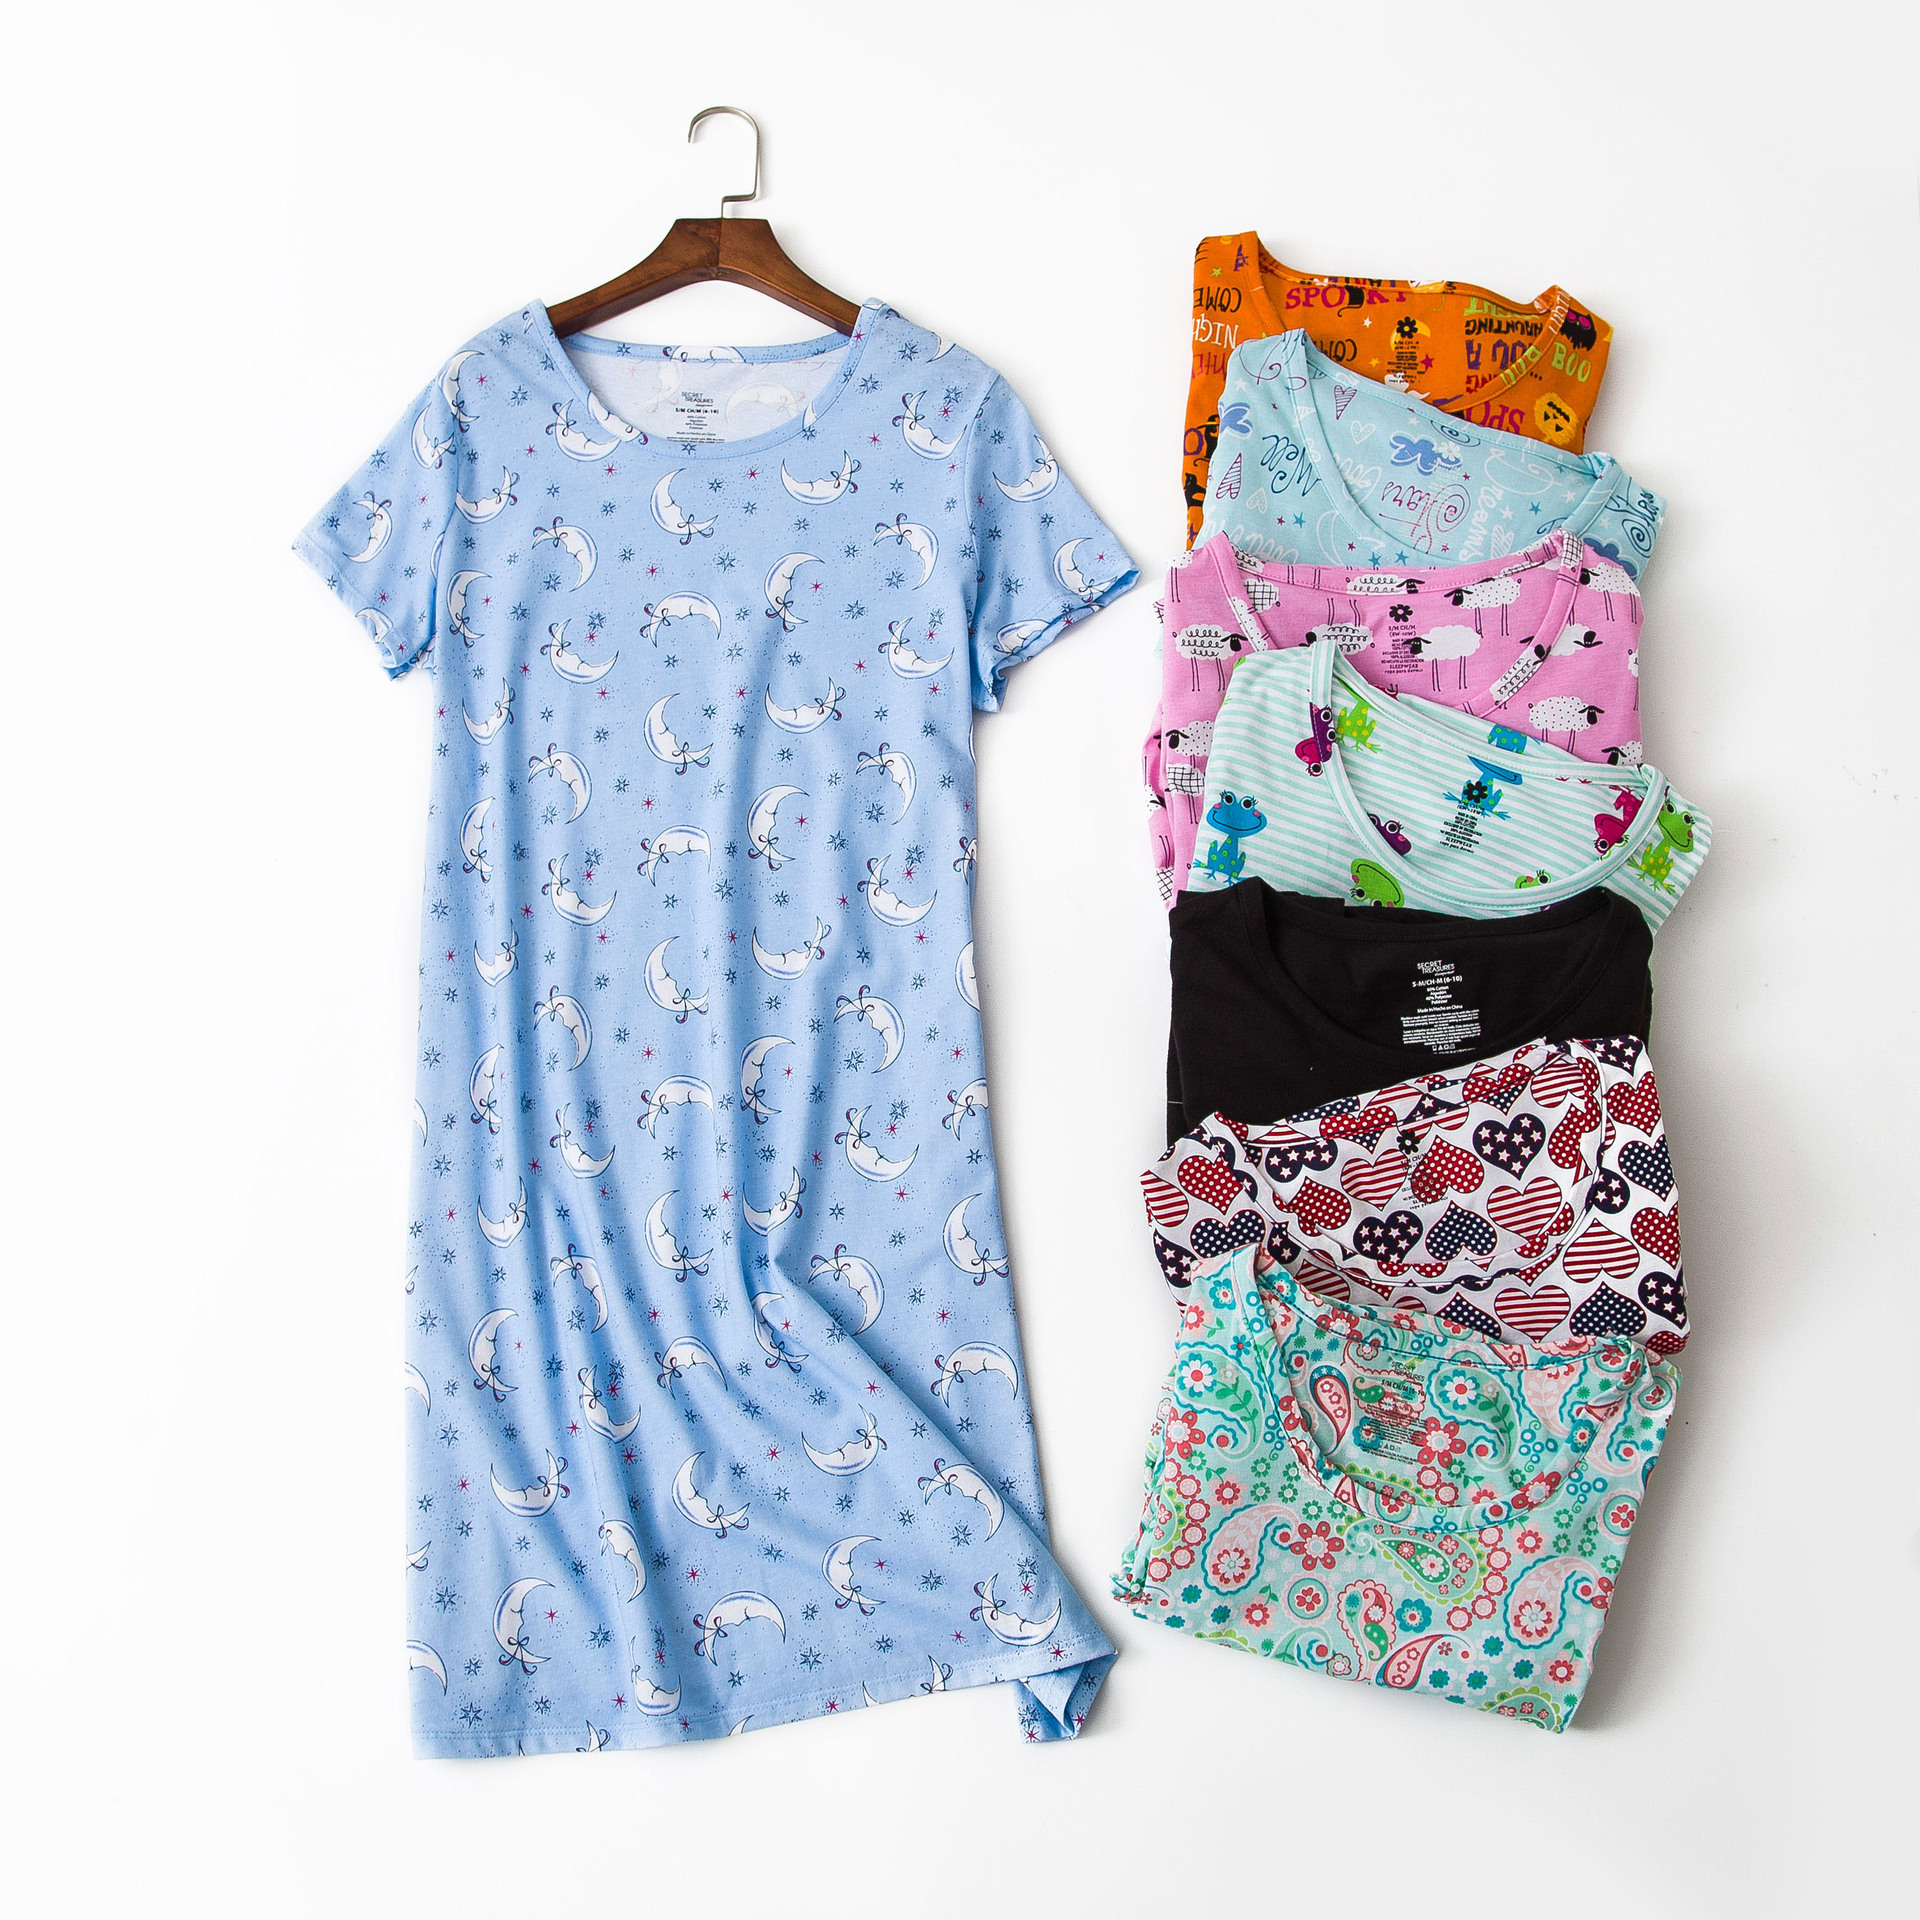 New 100% Cotton Short Sleeved   Nightgowns   Cute Cartoon Family Clothes Women   Sleepshirts   Plus Size Sleeping Skirt Simple Dresses